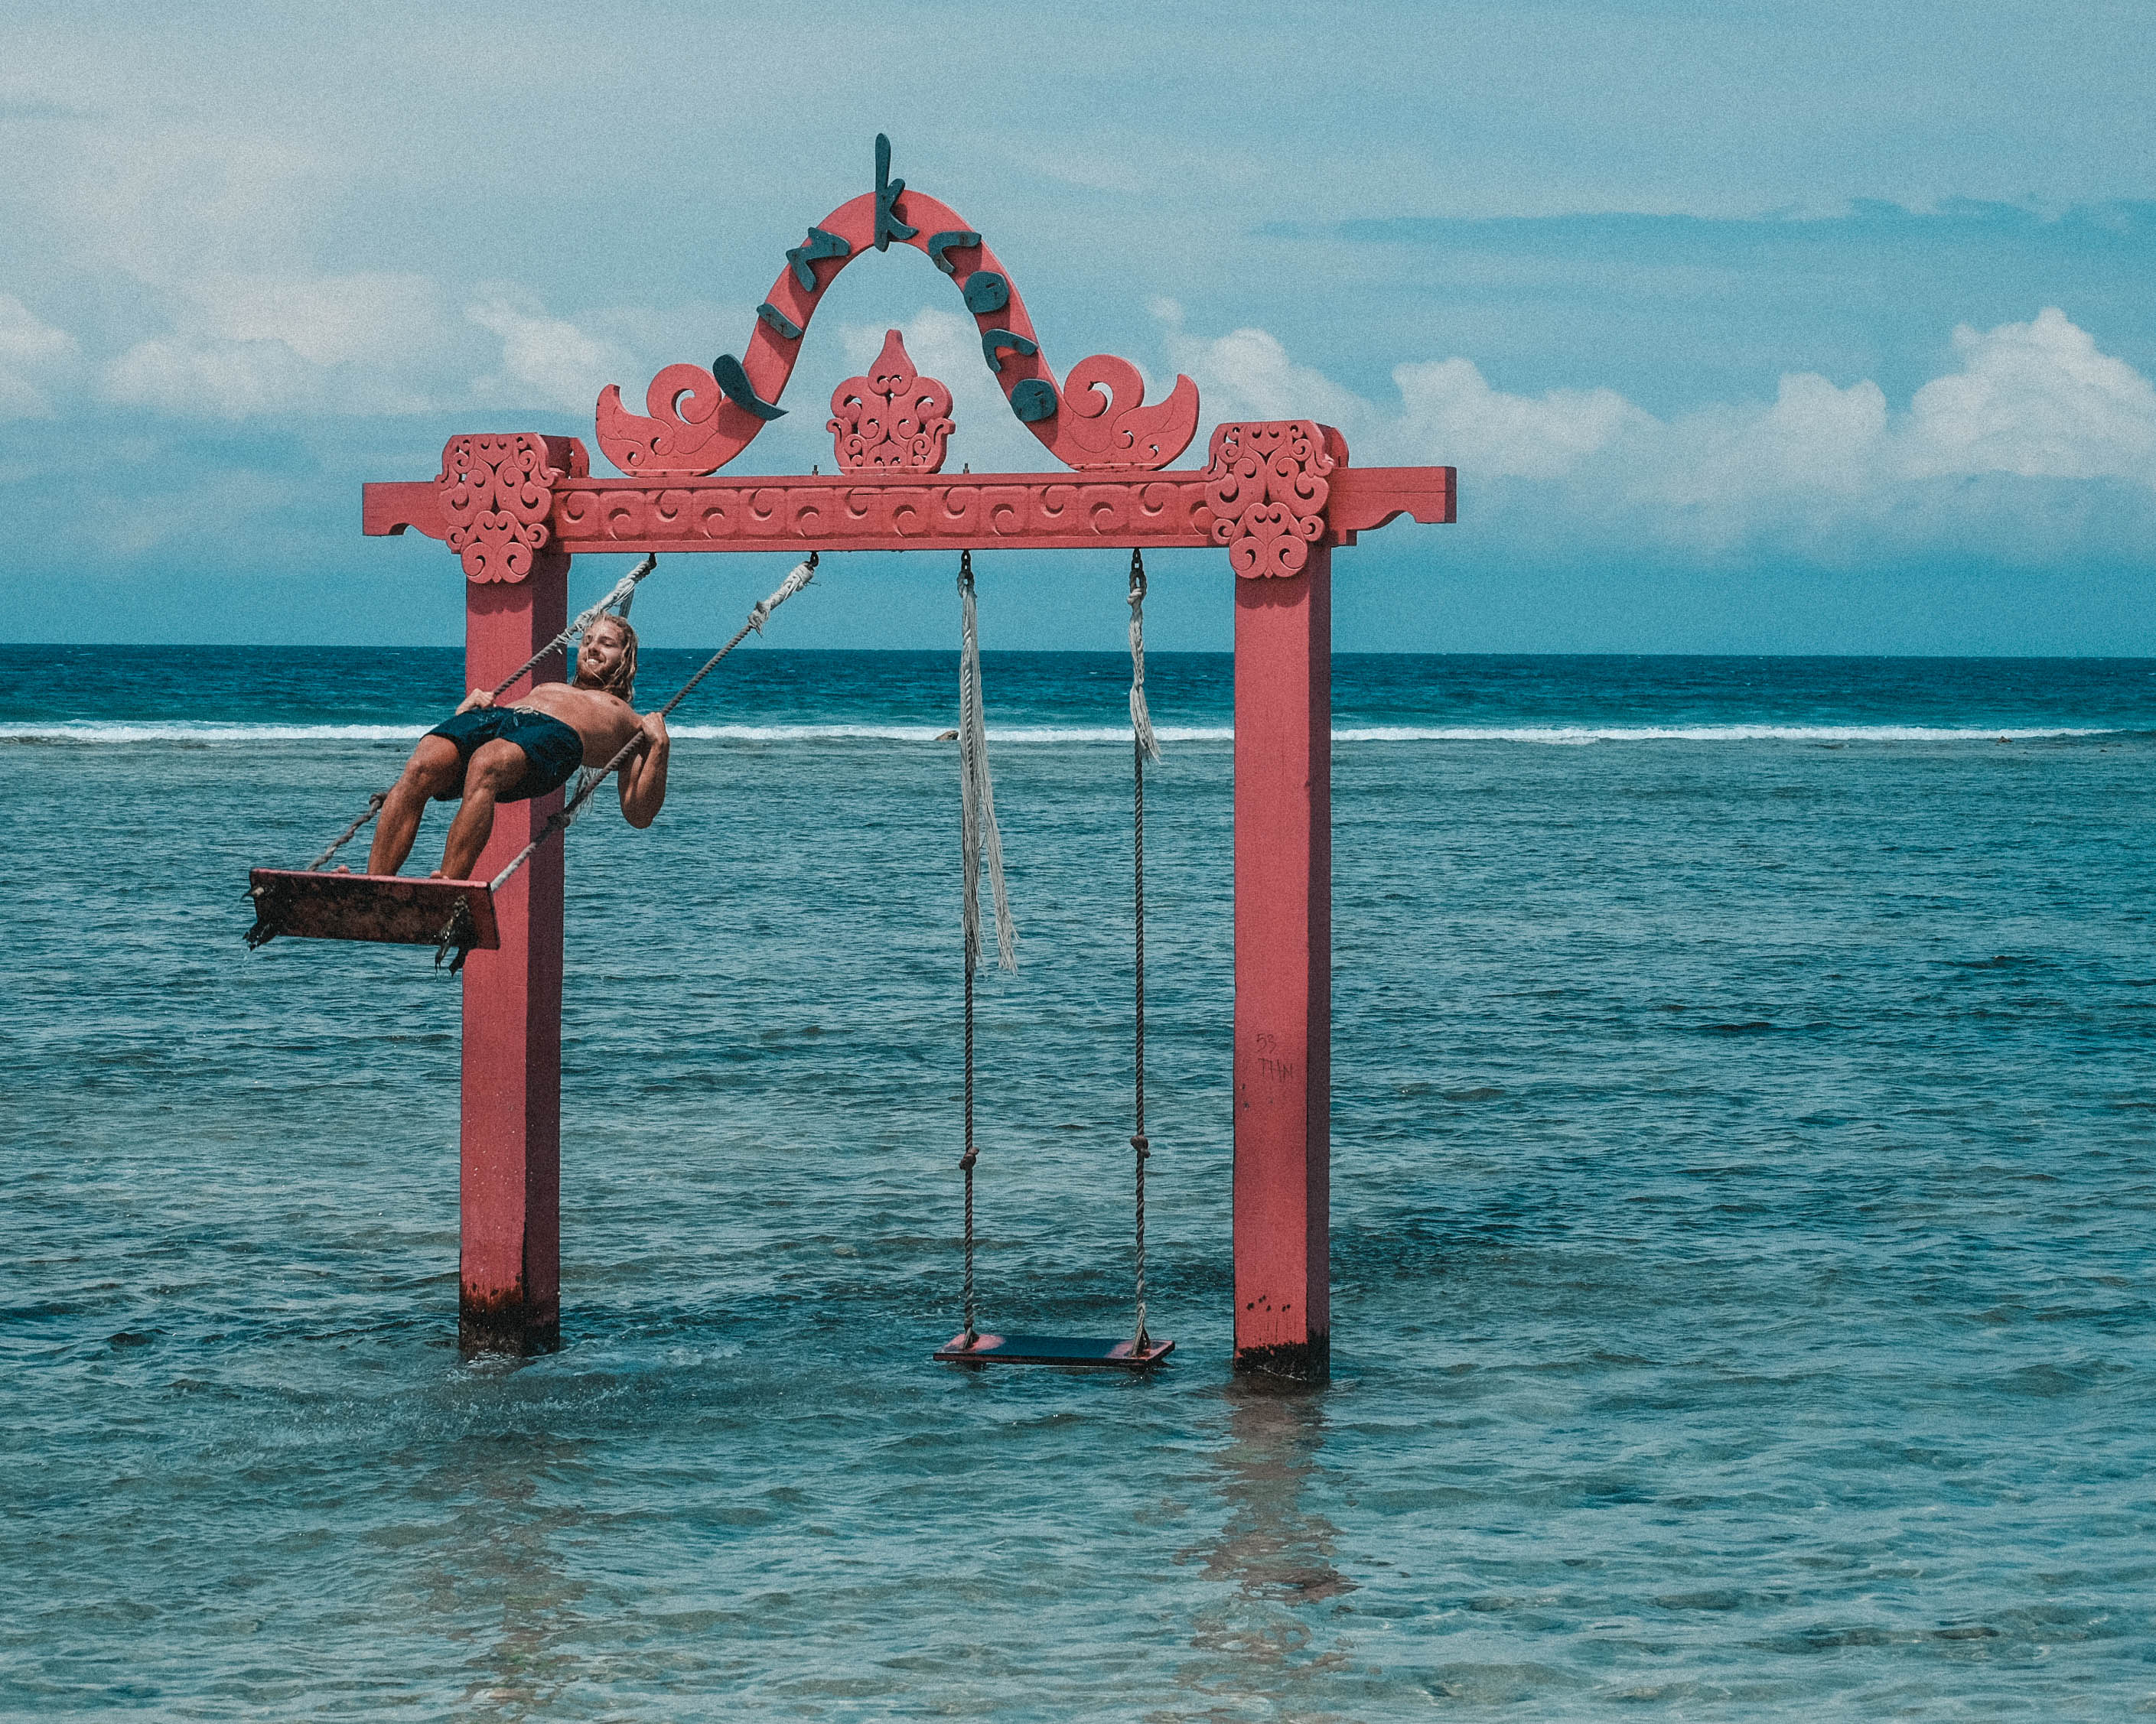 gili water swing